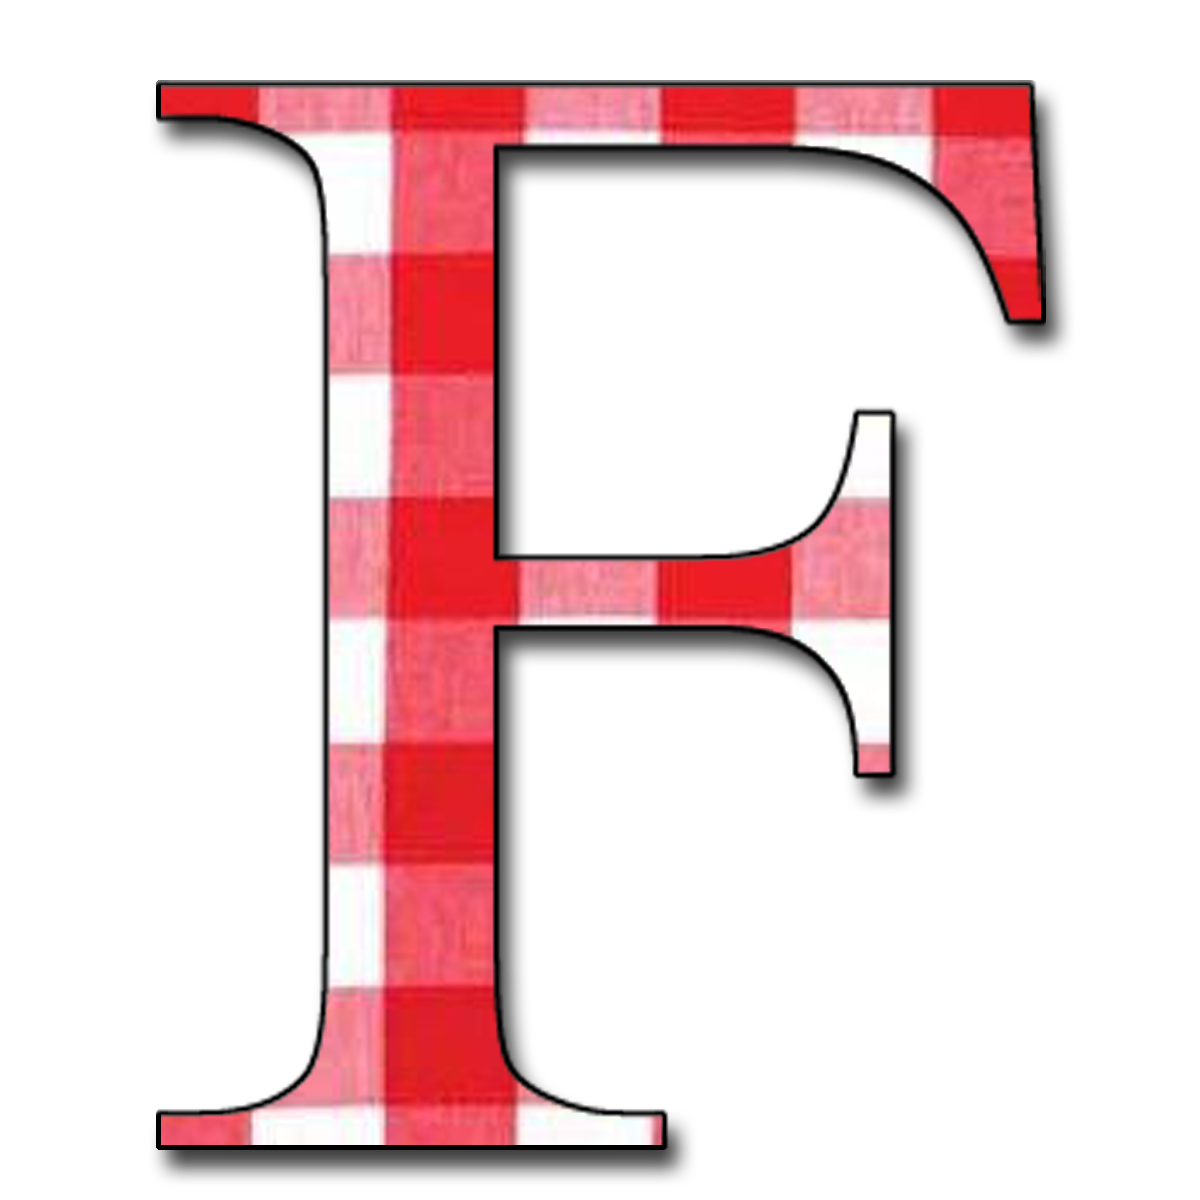 "Letter F Png Red gingham"" free scrapbook alphabet letters jpg & png"